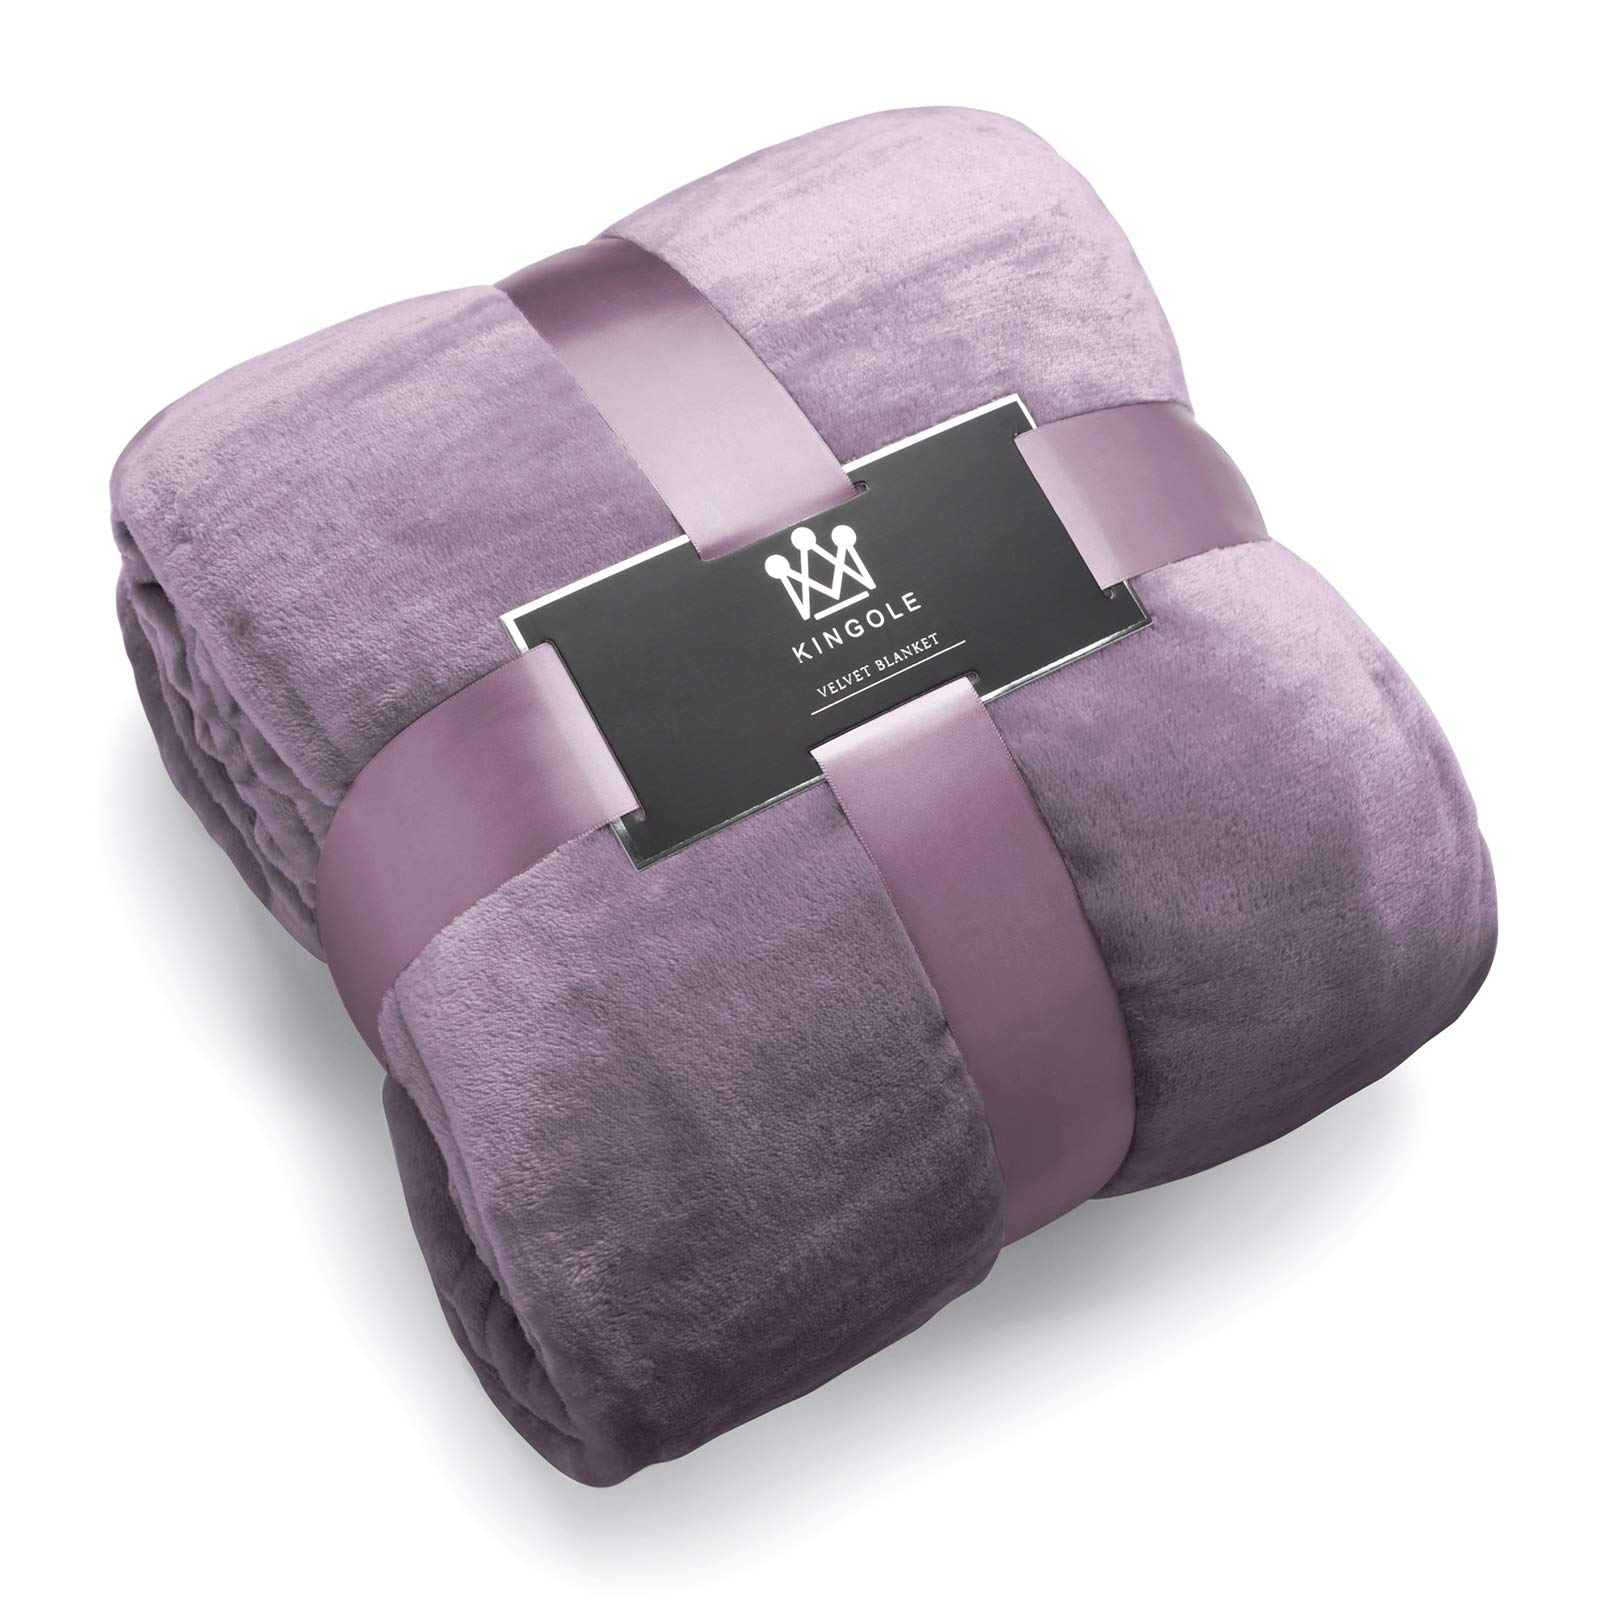 Kingole Flannel Fleece Microfiber Throw Blanket, Luxury Lavender Purple Queen Size Lightweight Cozy Couch Bed Super Soft and Warm Plush Solid Color 350GSM (90''x90)